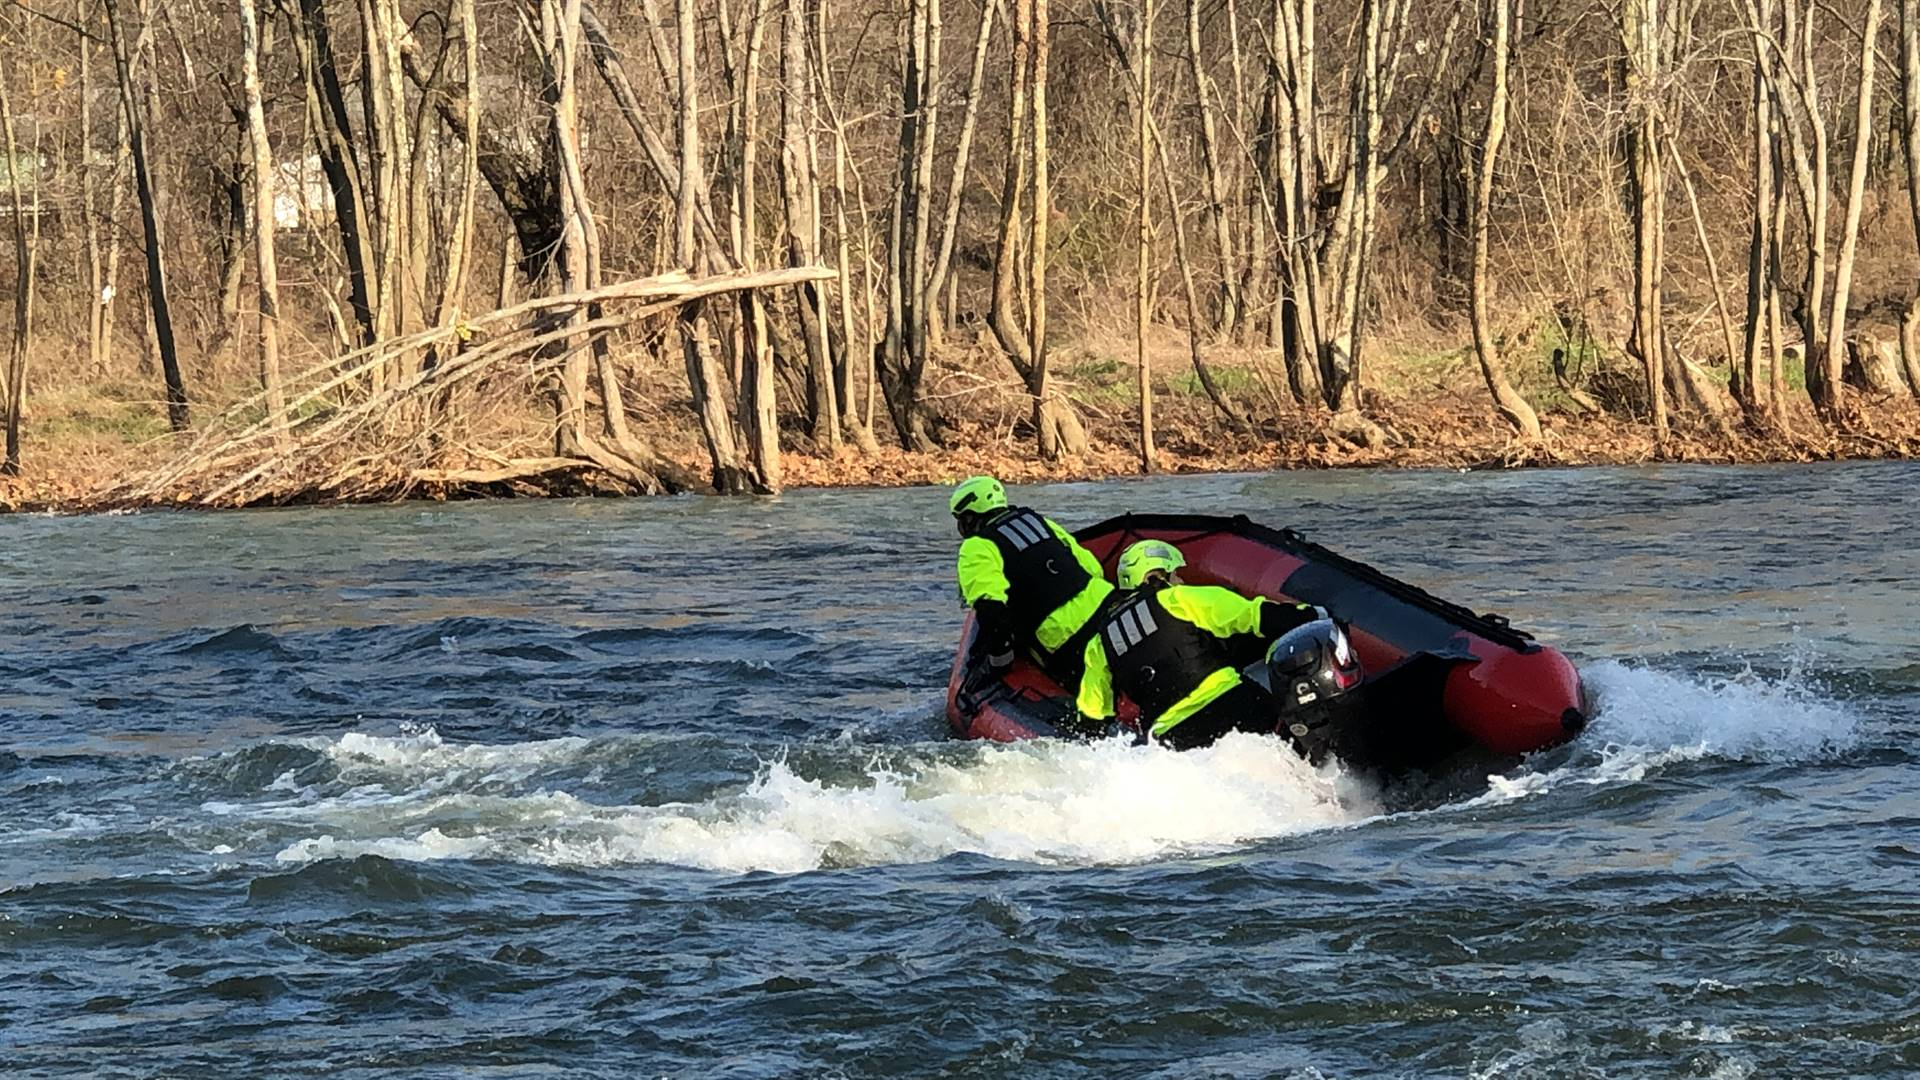 Jefferson Hills VFD Swift Water Rescue Training on the Water at McConnells Mill